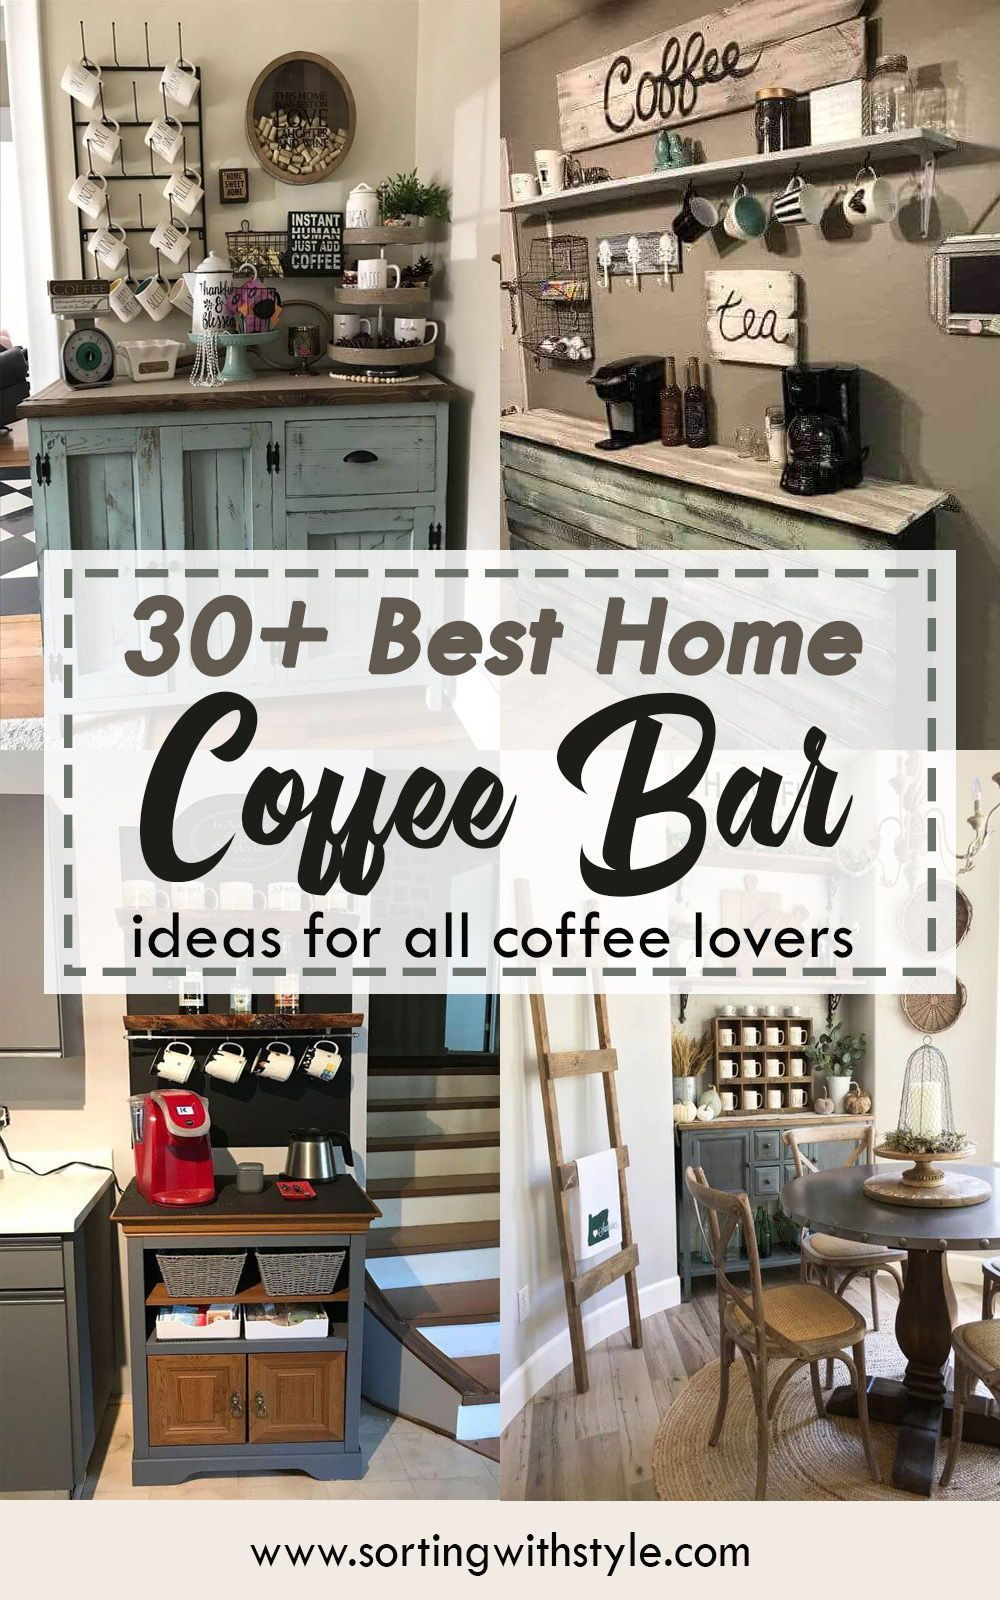 9+ Best Home Coffee Bar Ideas for All Coffee Lovers ...